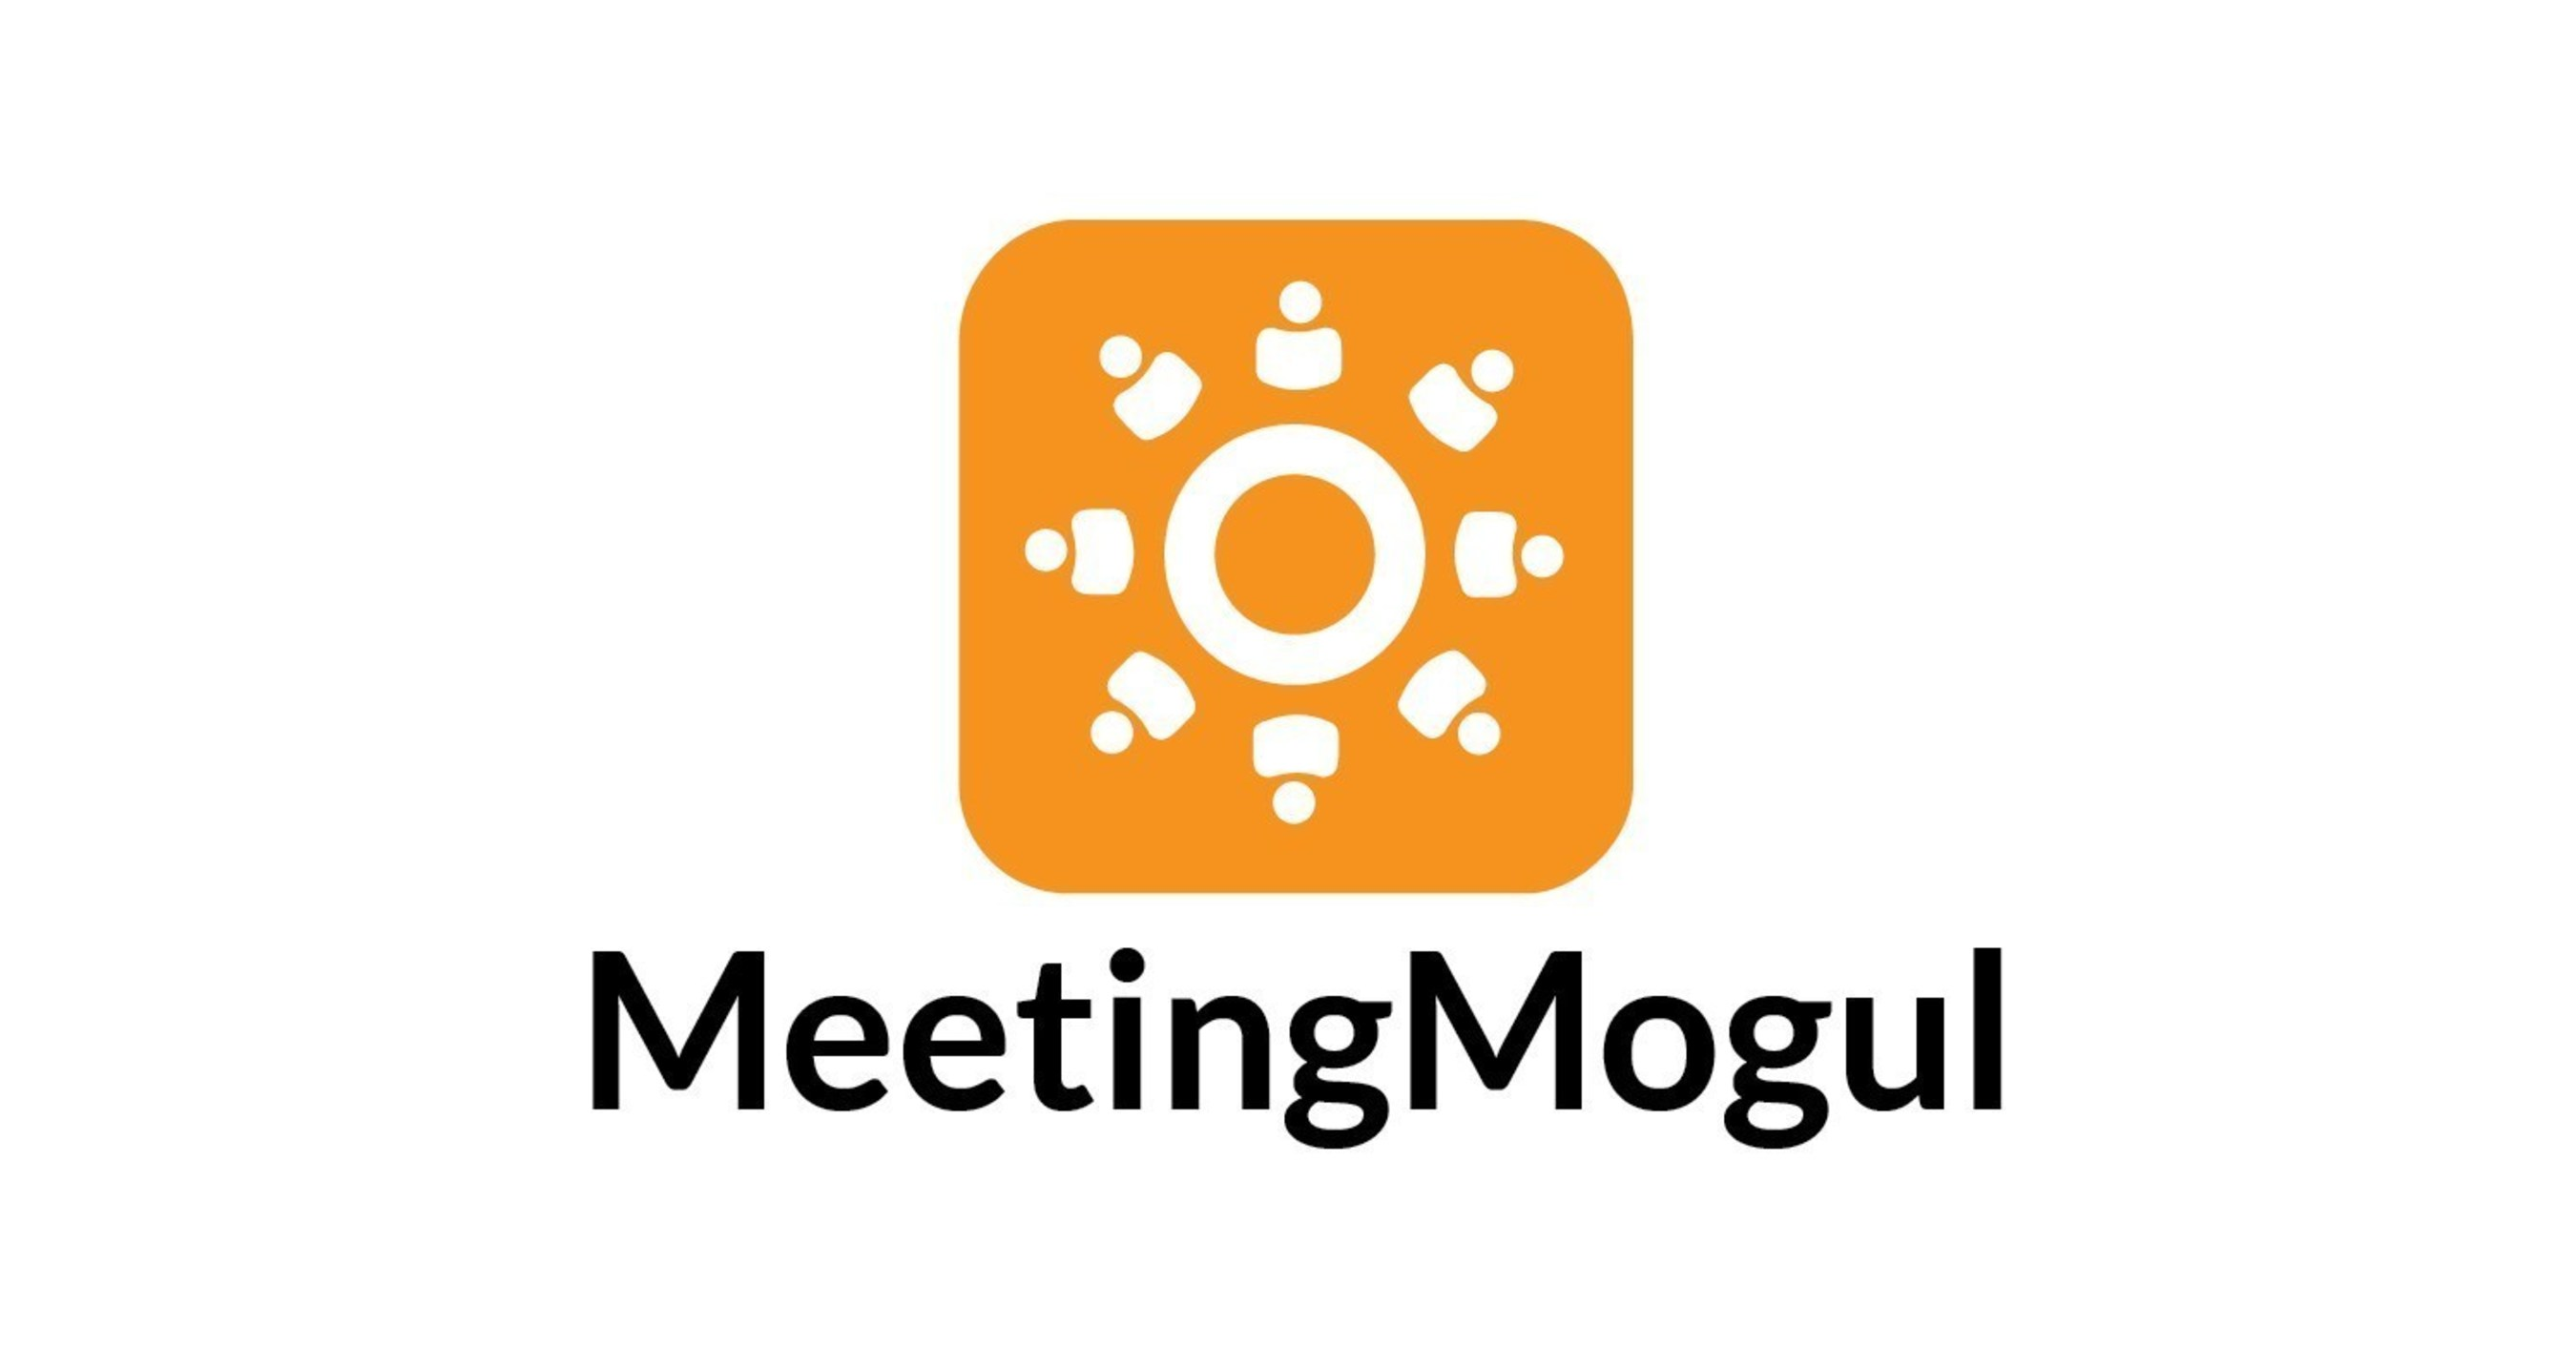 MeetingMogul is a mobile-first approach to meetings that uses mobile and web technology to simplify the preparation, attendance and follow-up for meetings, especially those involving remote and traveling team members participating via phone.